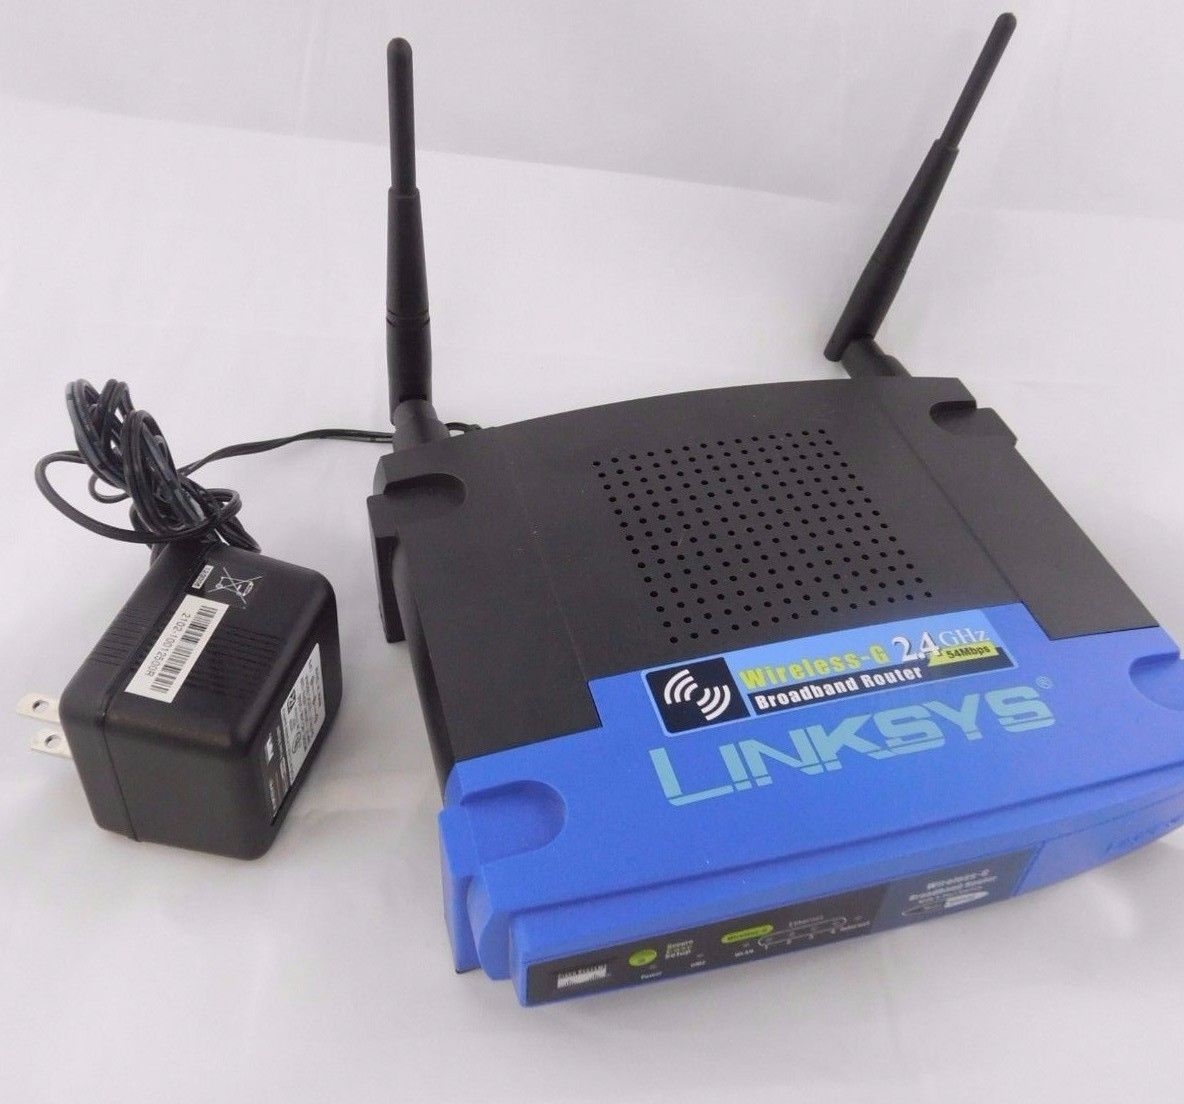 LINKSYS WRT54G V6 DRIVERS FOR WINDOWS XP